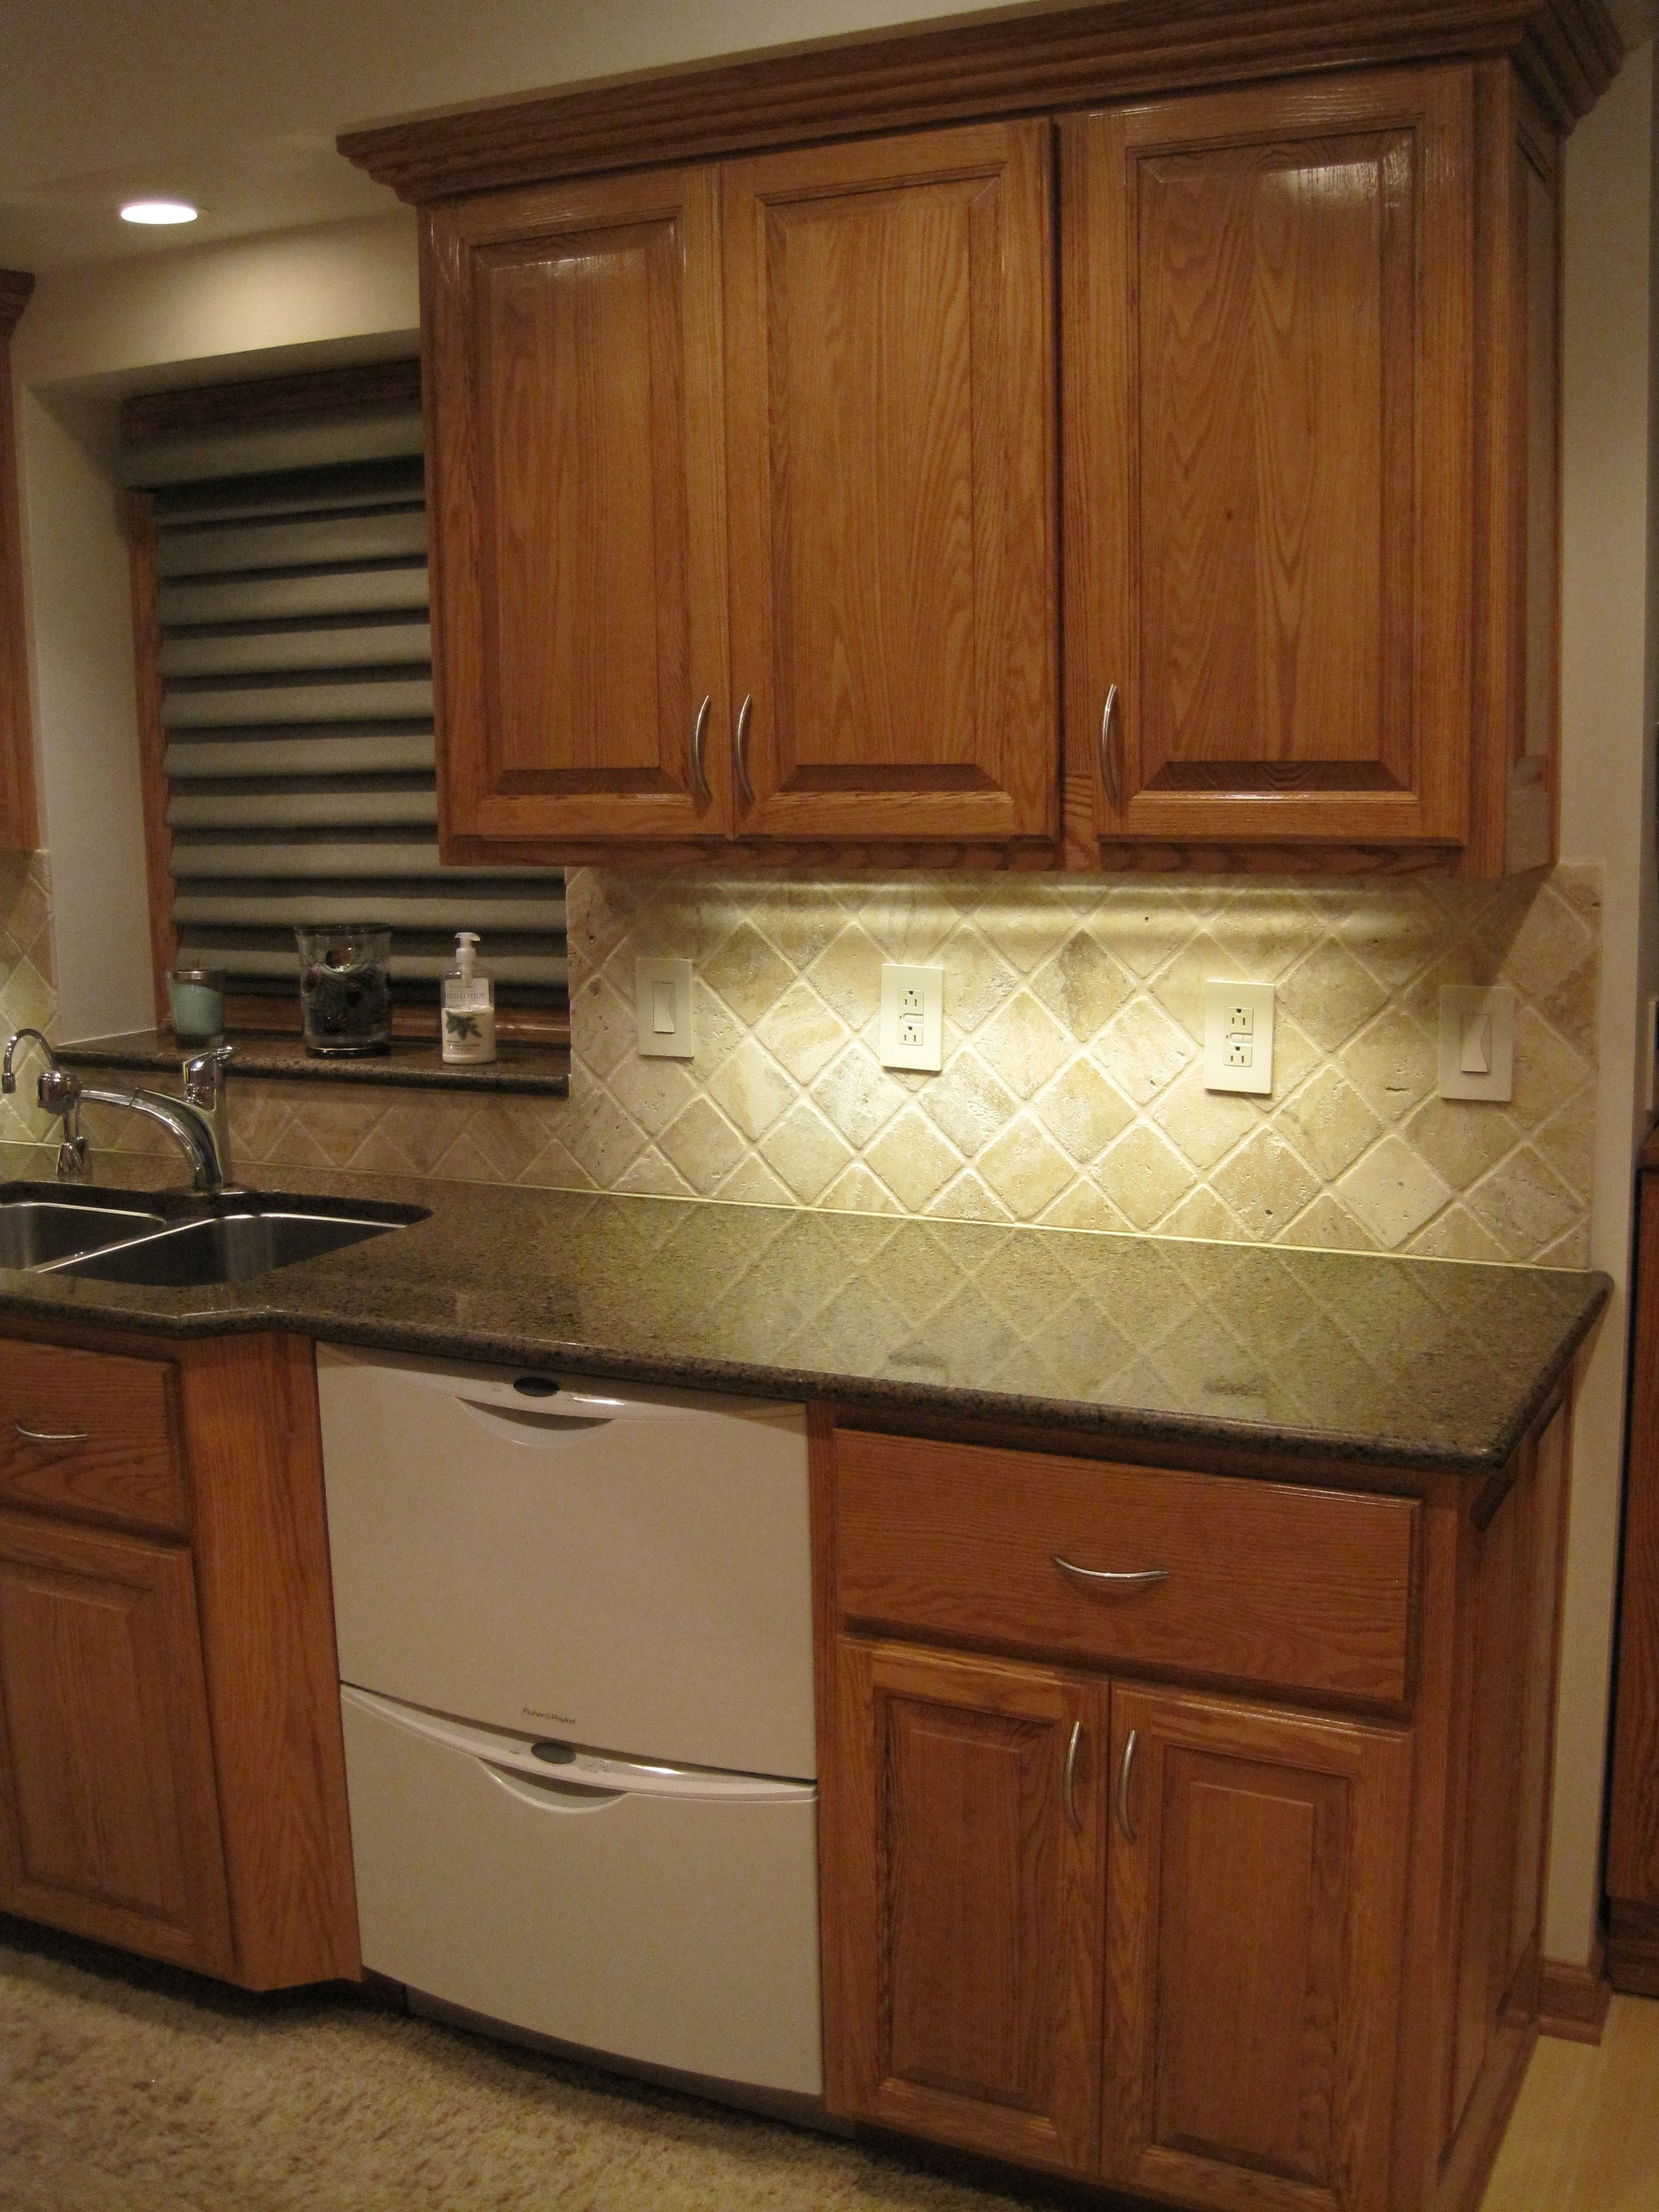 Marvelous photograph of Red Oak Kitchen Cabinets kitchen inspiration Pinterest with #A48E27 color and 2736x3648 pixels